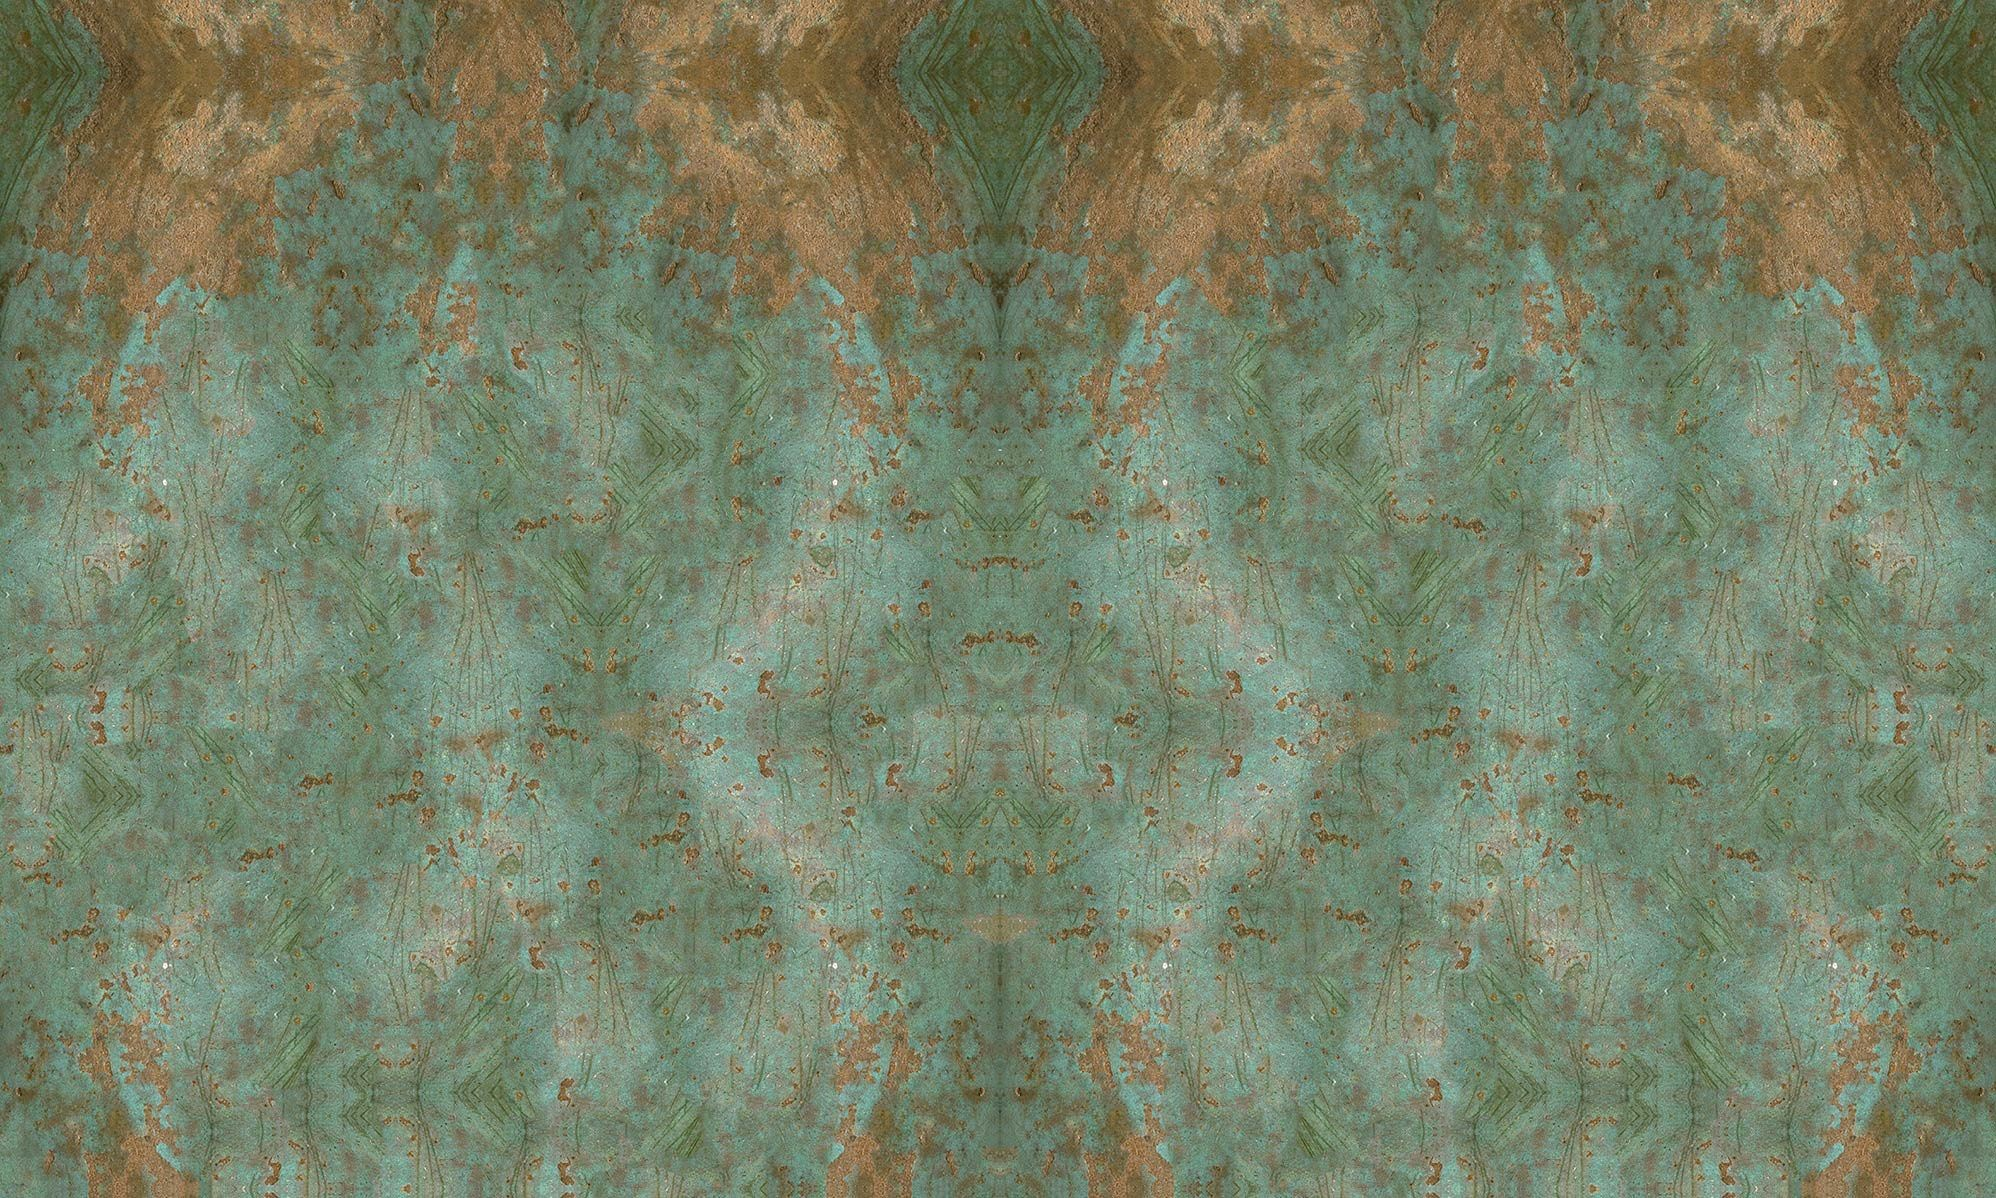 Res: 1996x1198, Bronze Cannon Background (MW9735) : Wallpaper pattern of antique verdigris  bronze with a patina